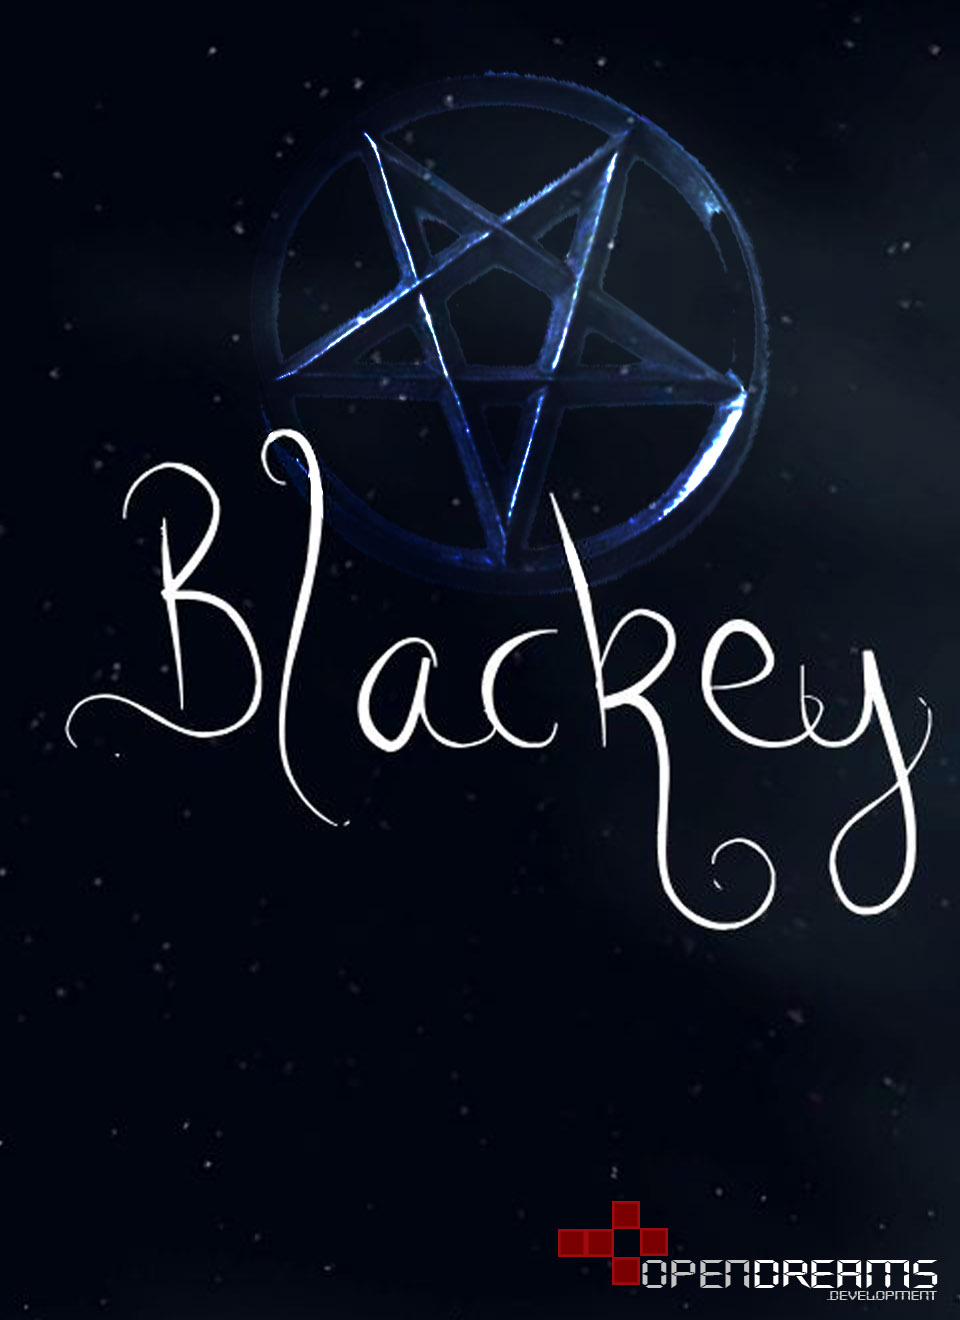 blackey dating site Blackey cathy back retrieving premium report about & contact info photos & & social posts reviews this may contain online profiles, dating websites.